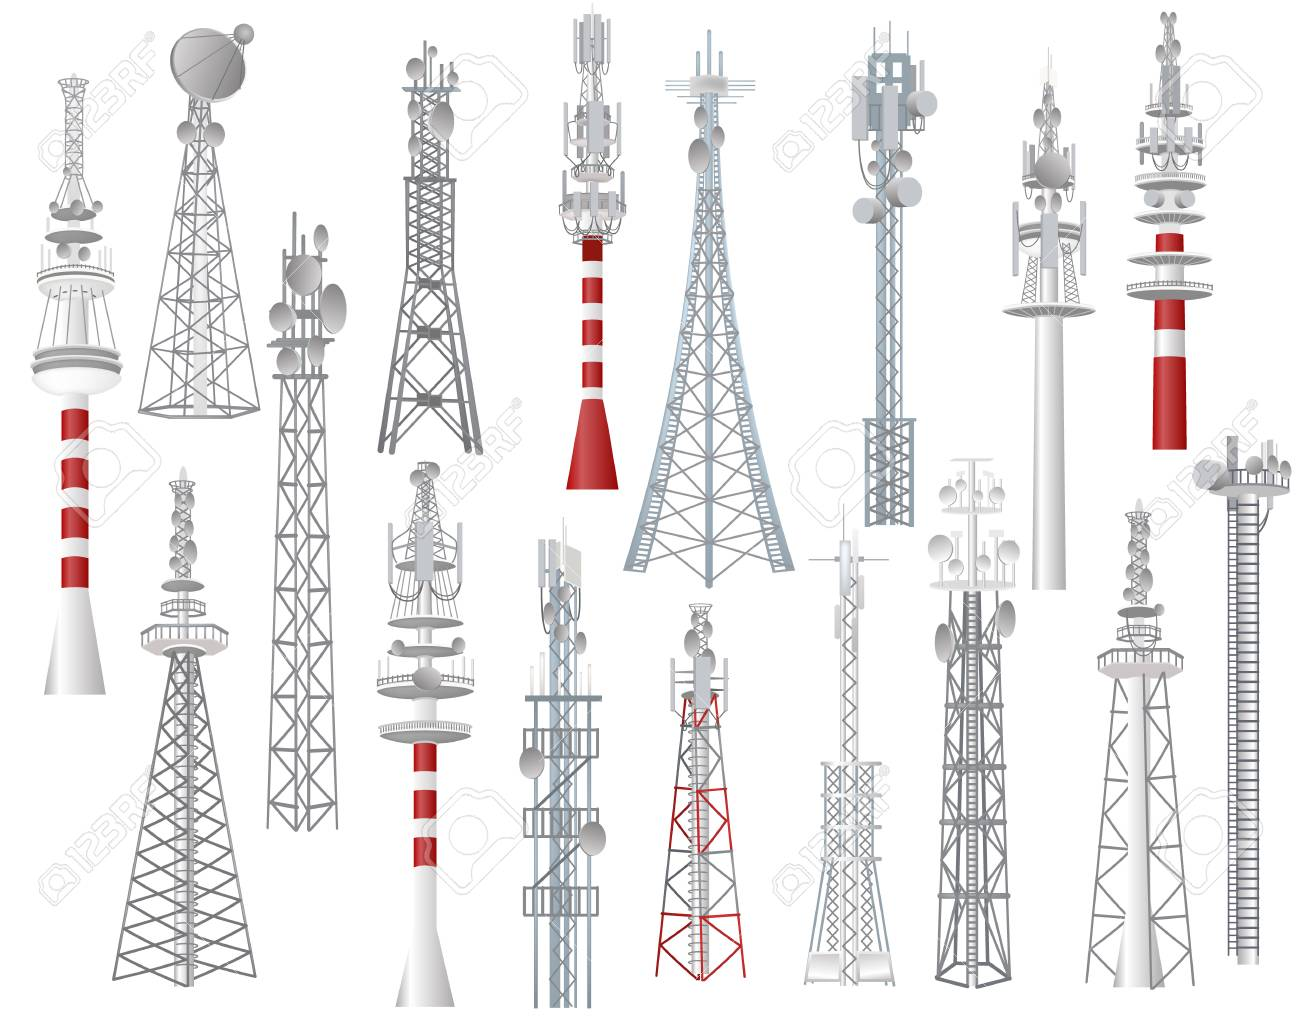 Radio tower vector towered communication technology antenna construction in city with network wireless signal station illustration set of towering broadcast equipment isolated on white background. - 109672417